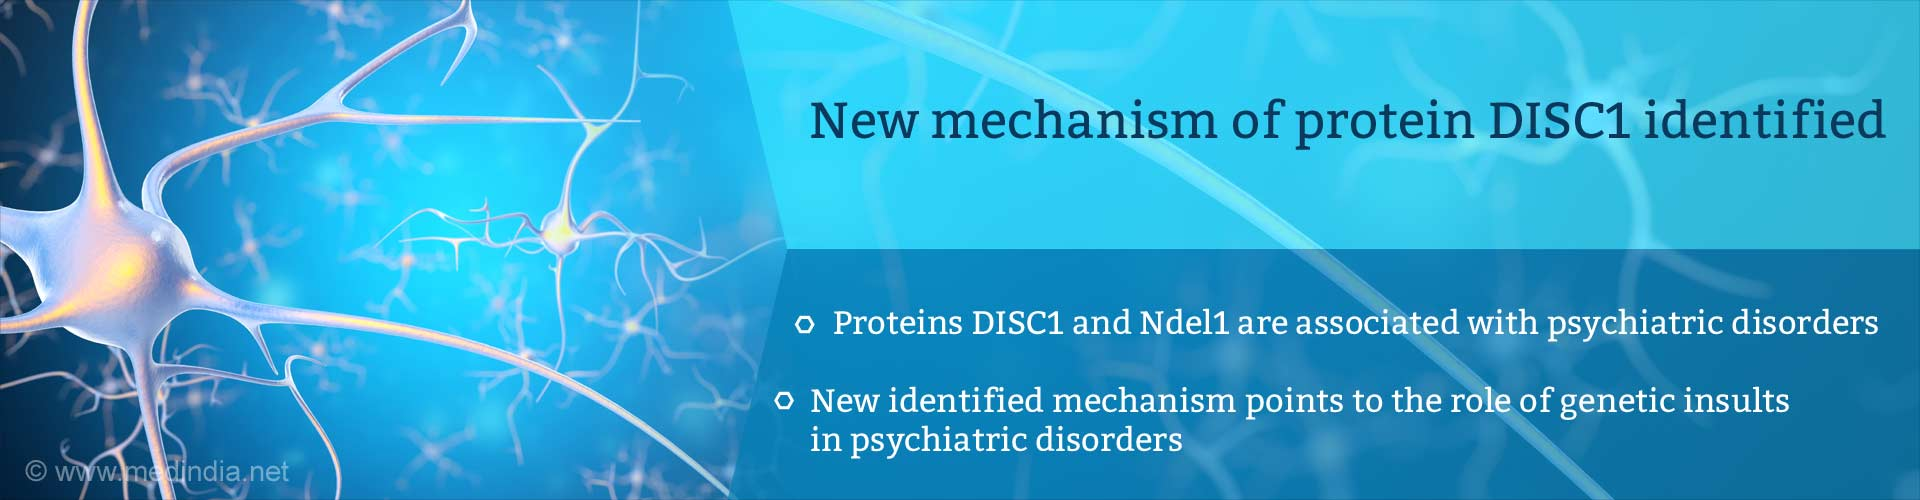 Mechanism of Psychiatric Disorder Agent Identified